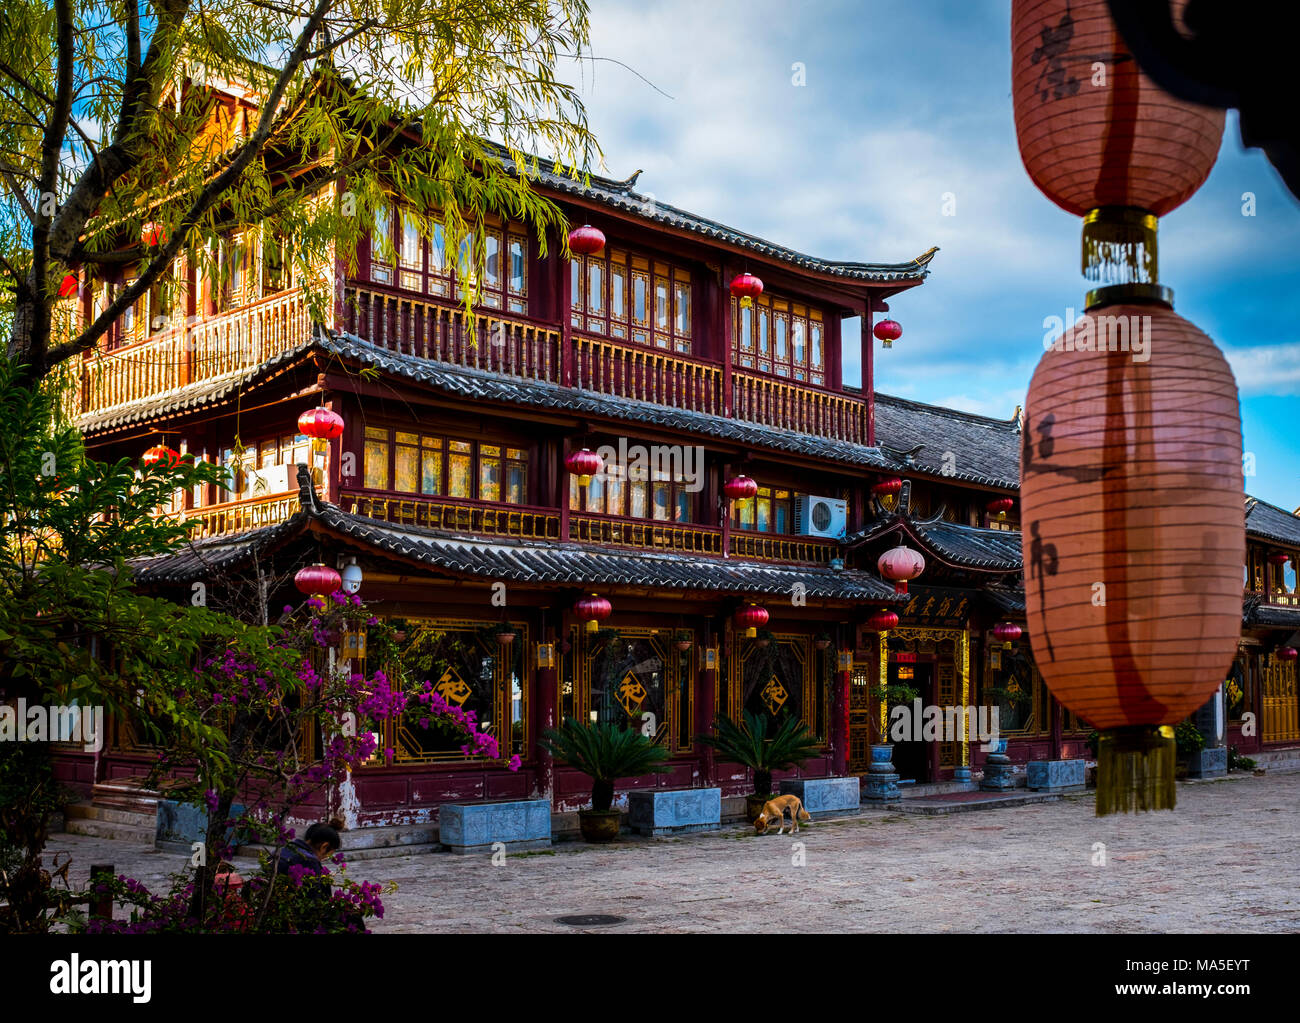 Old Town of Lijiang, Yunnan Province, China, Asia, Asian, East Asia, Far East - Stock Image